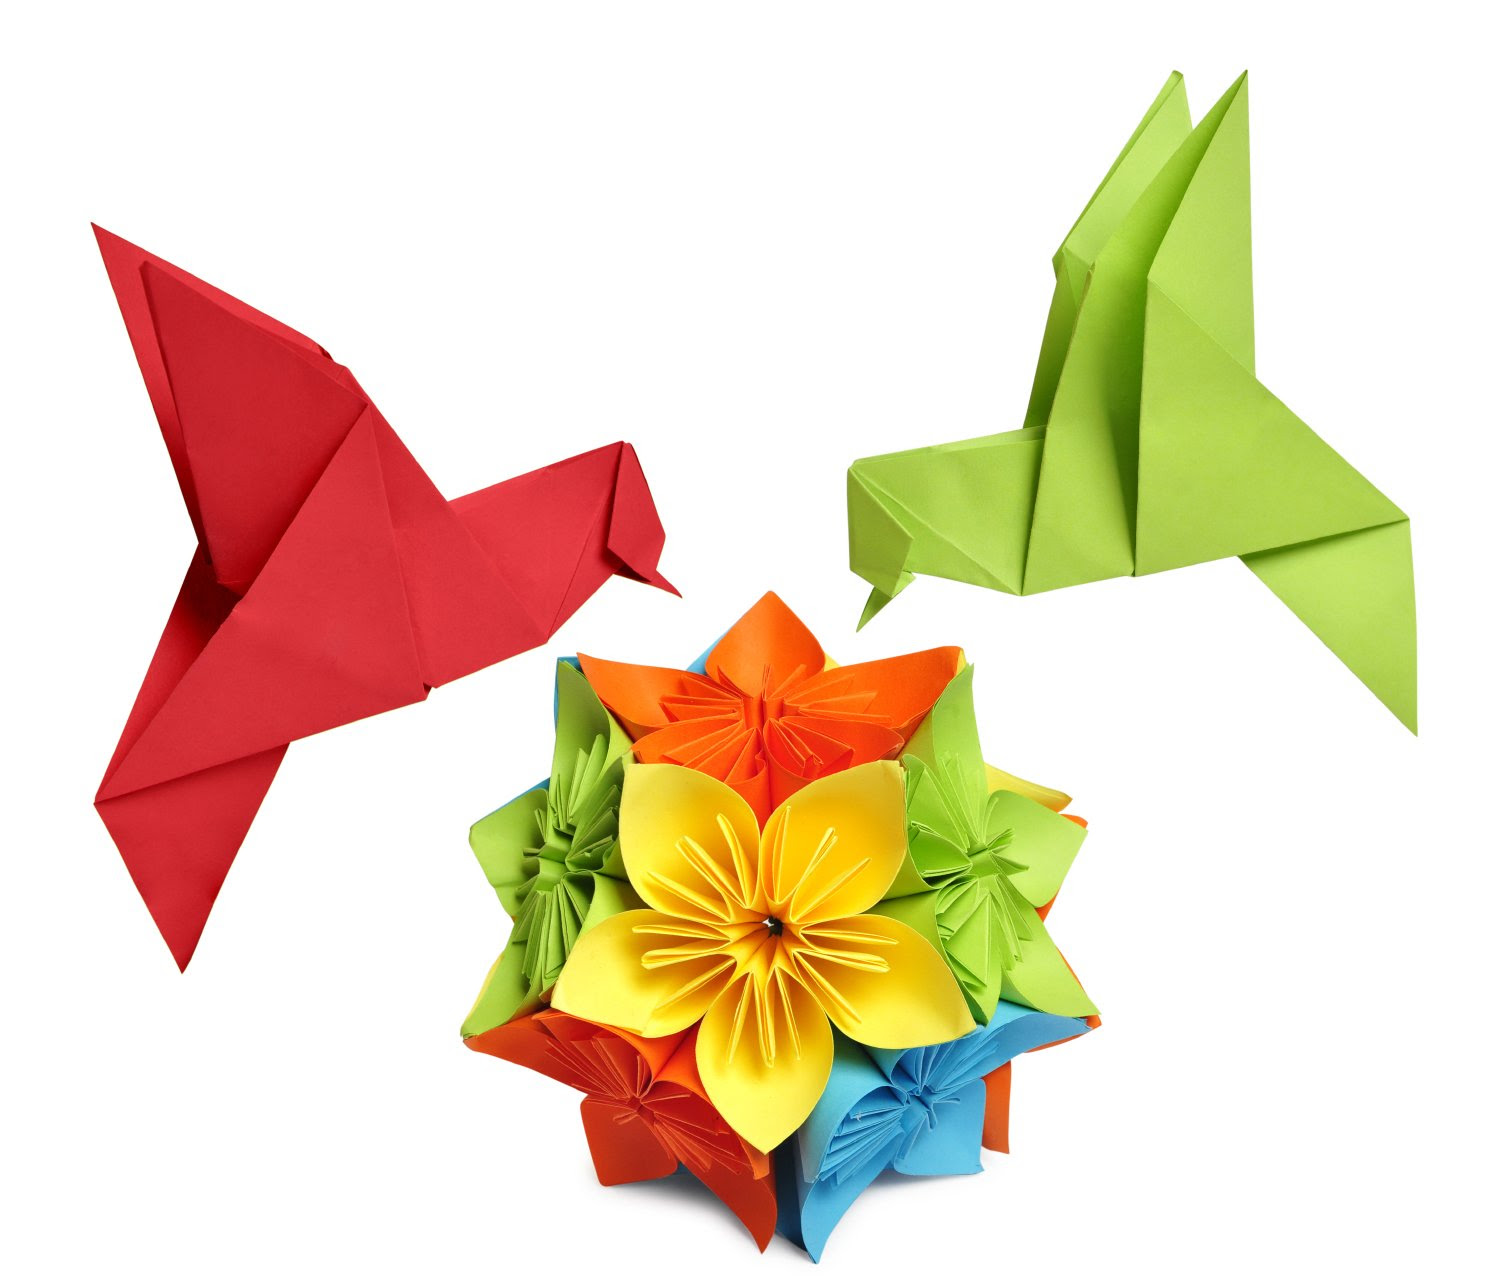 HAVE YOU EVER TRIED ORIGAMI?